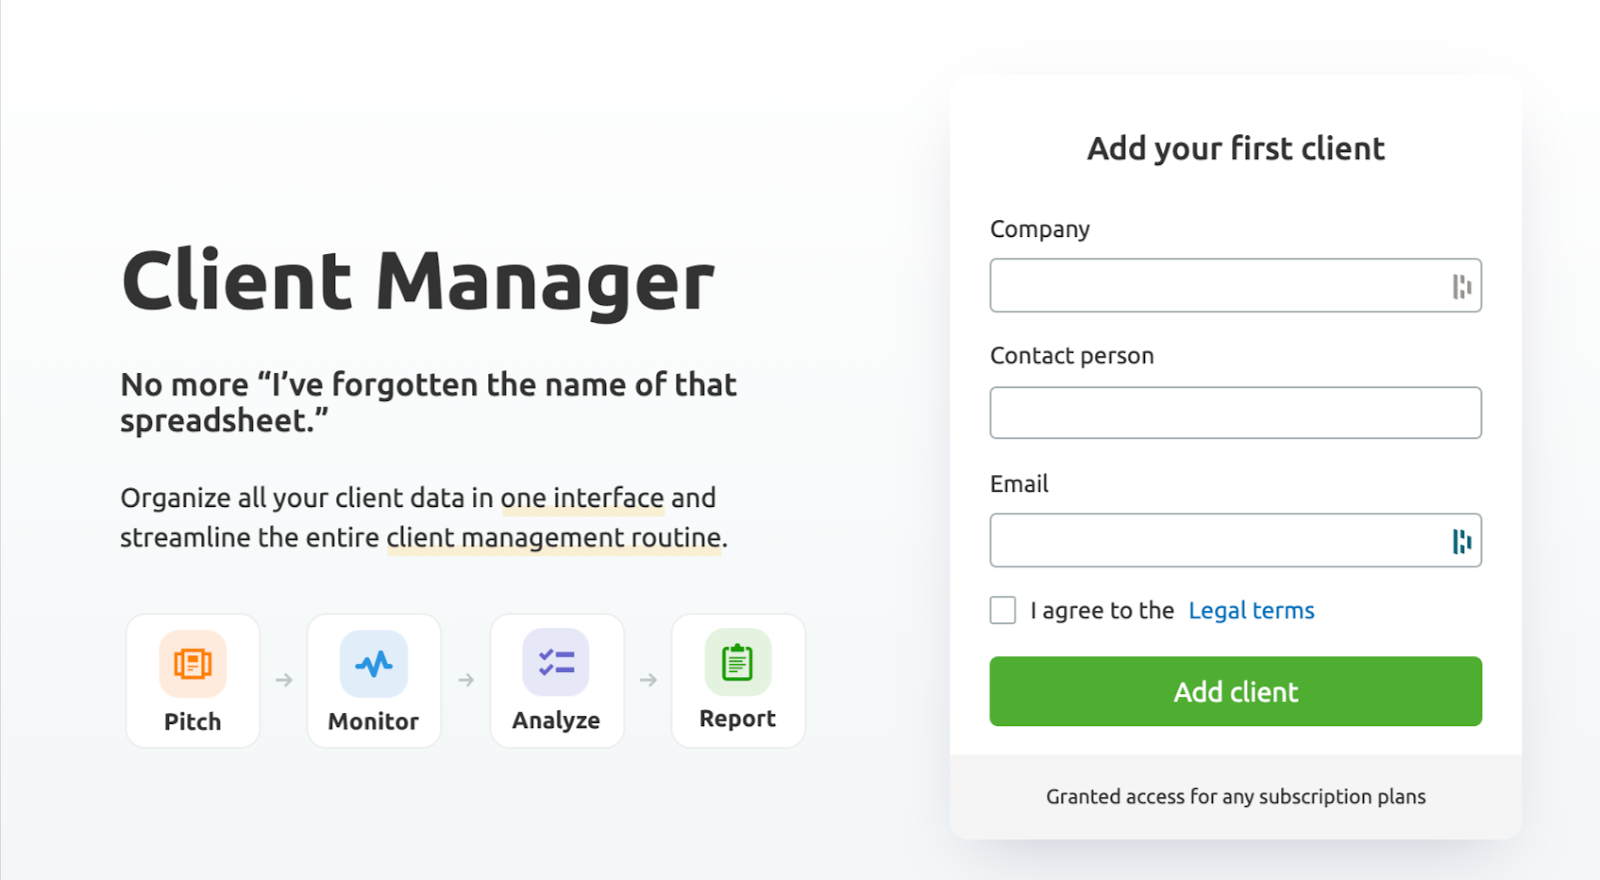 Getting Started With Client Manager